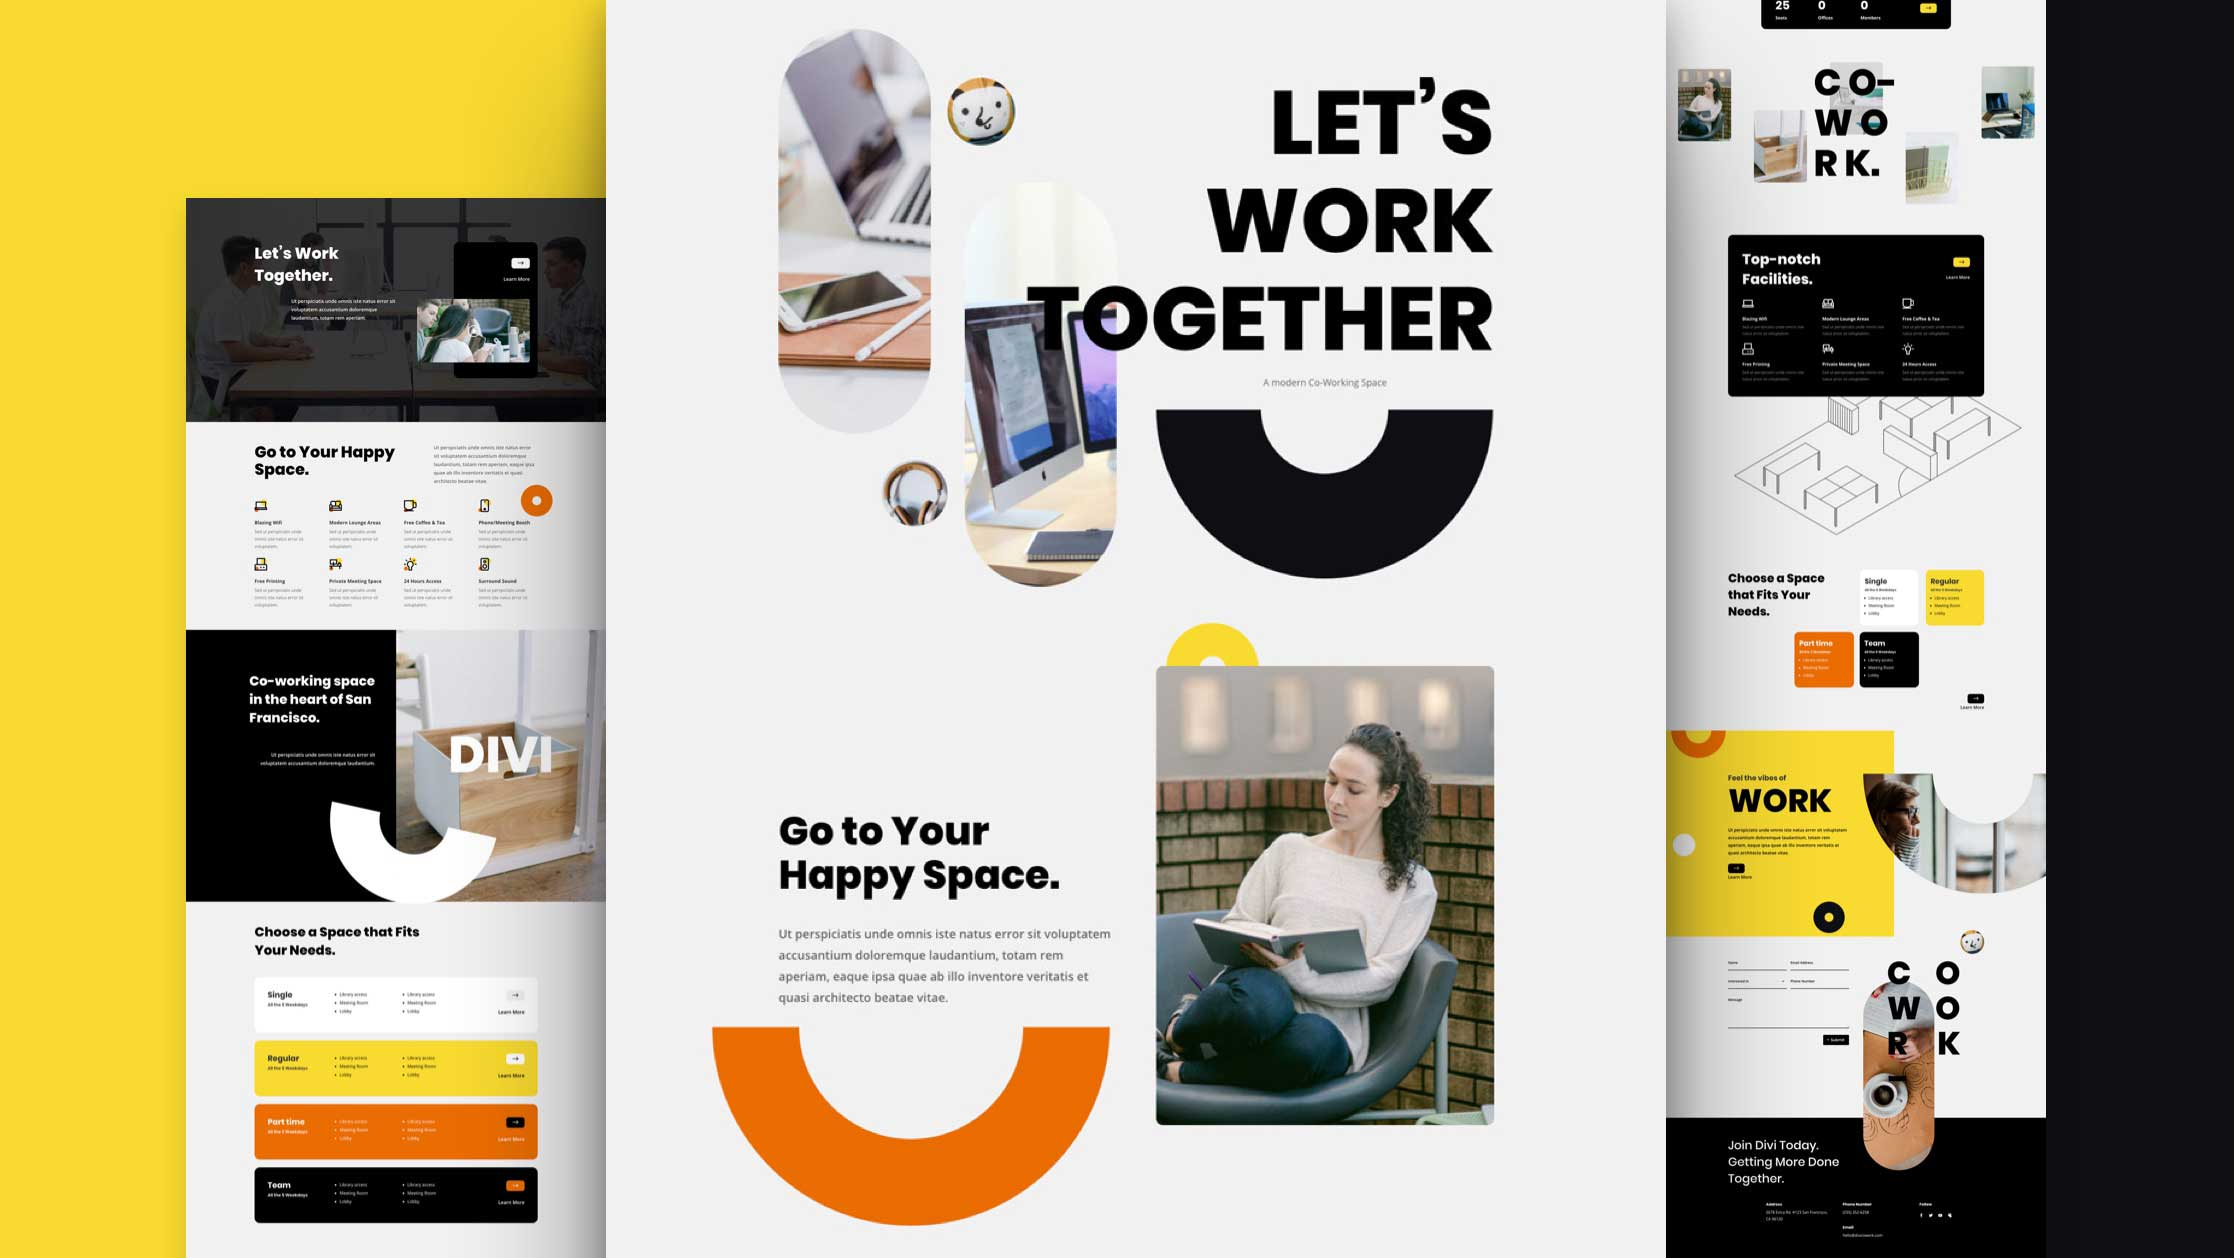 coworking-space-divi-kostenloses-layout-pack